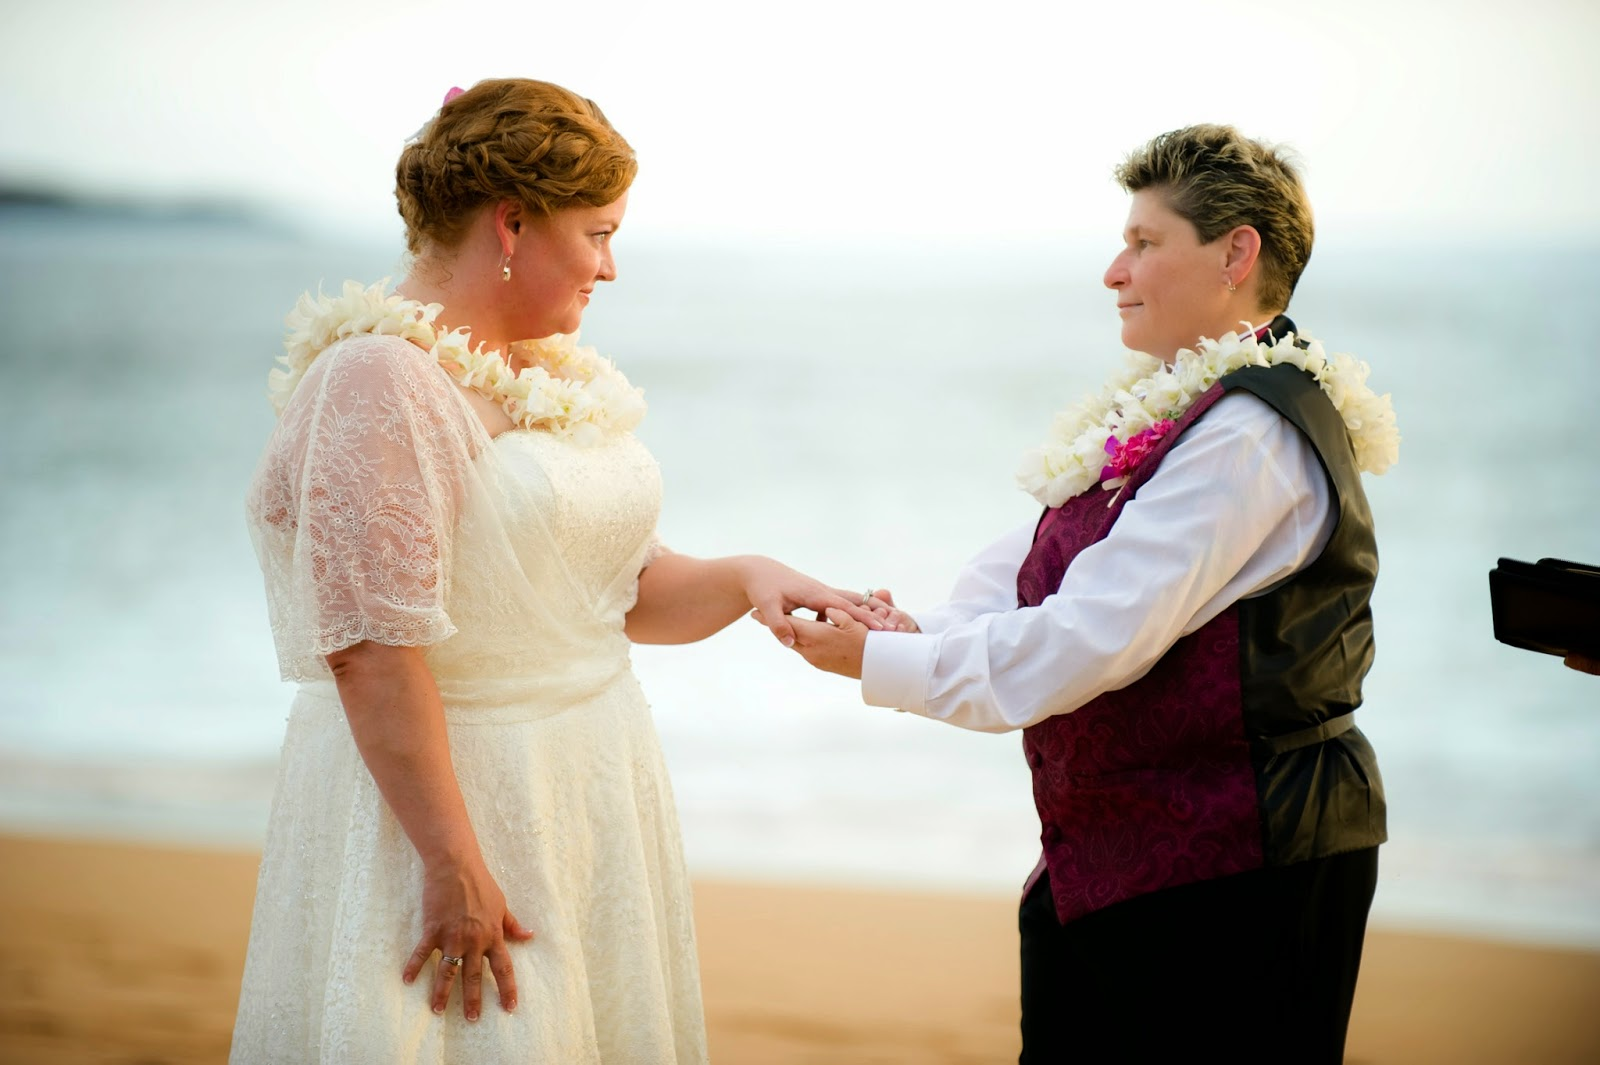 maui wedding planners, maui weddings, maui gay weddings, maui wedding photographers, maui wedding coordiantors